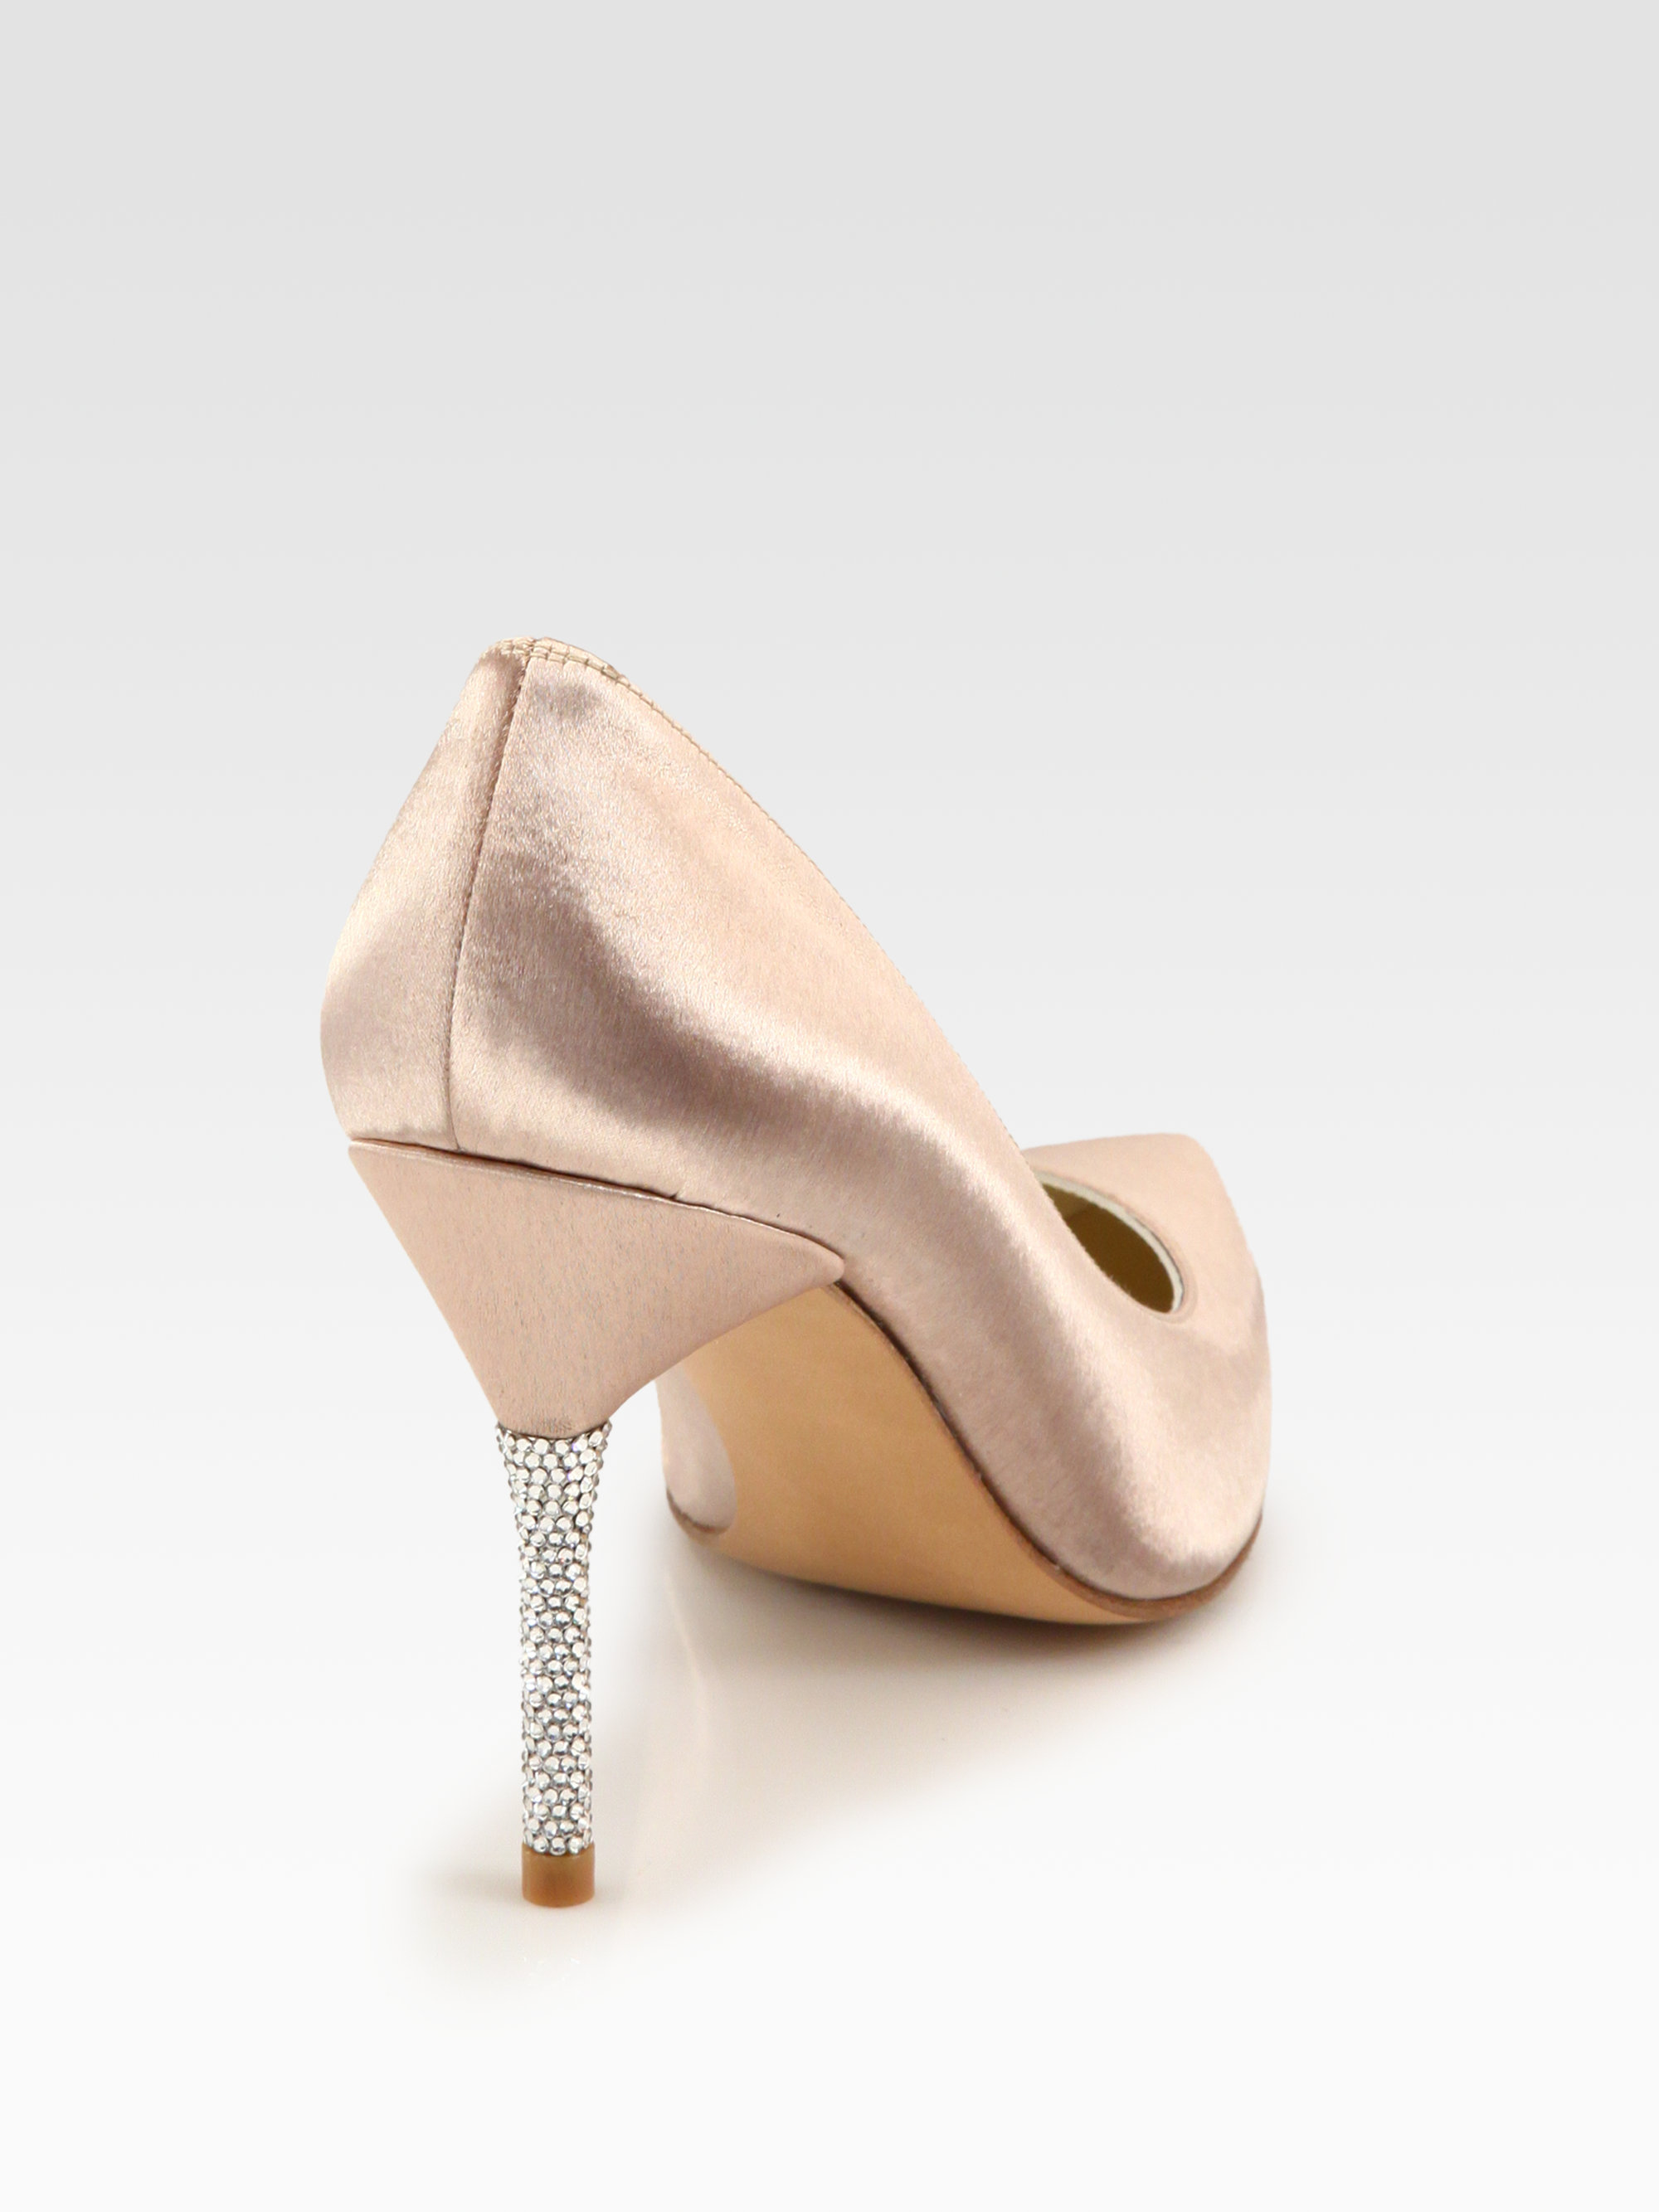 Stuart Weitzman Embellished Cutout Pumps fast delivery websites cheap price eastbay for sale SZaW0Hq1